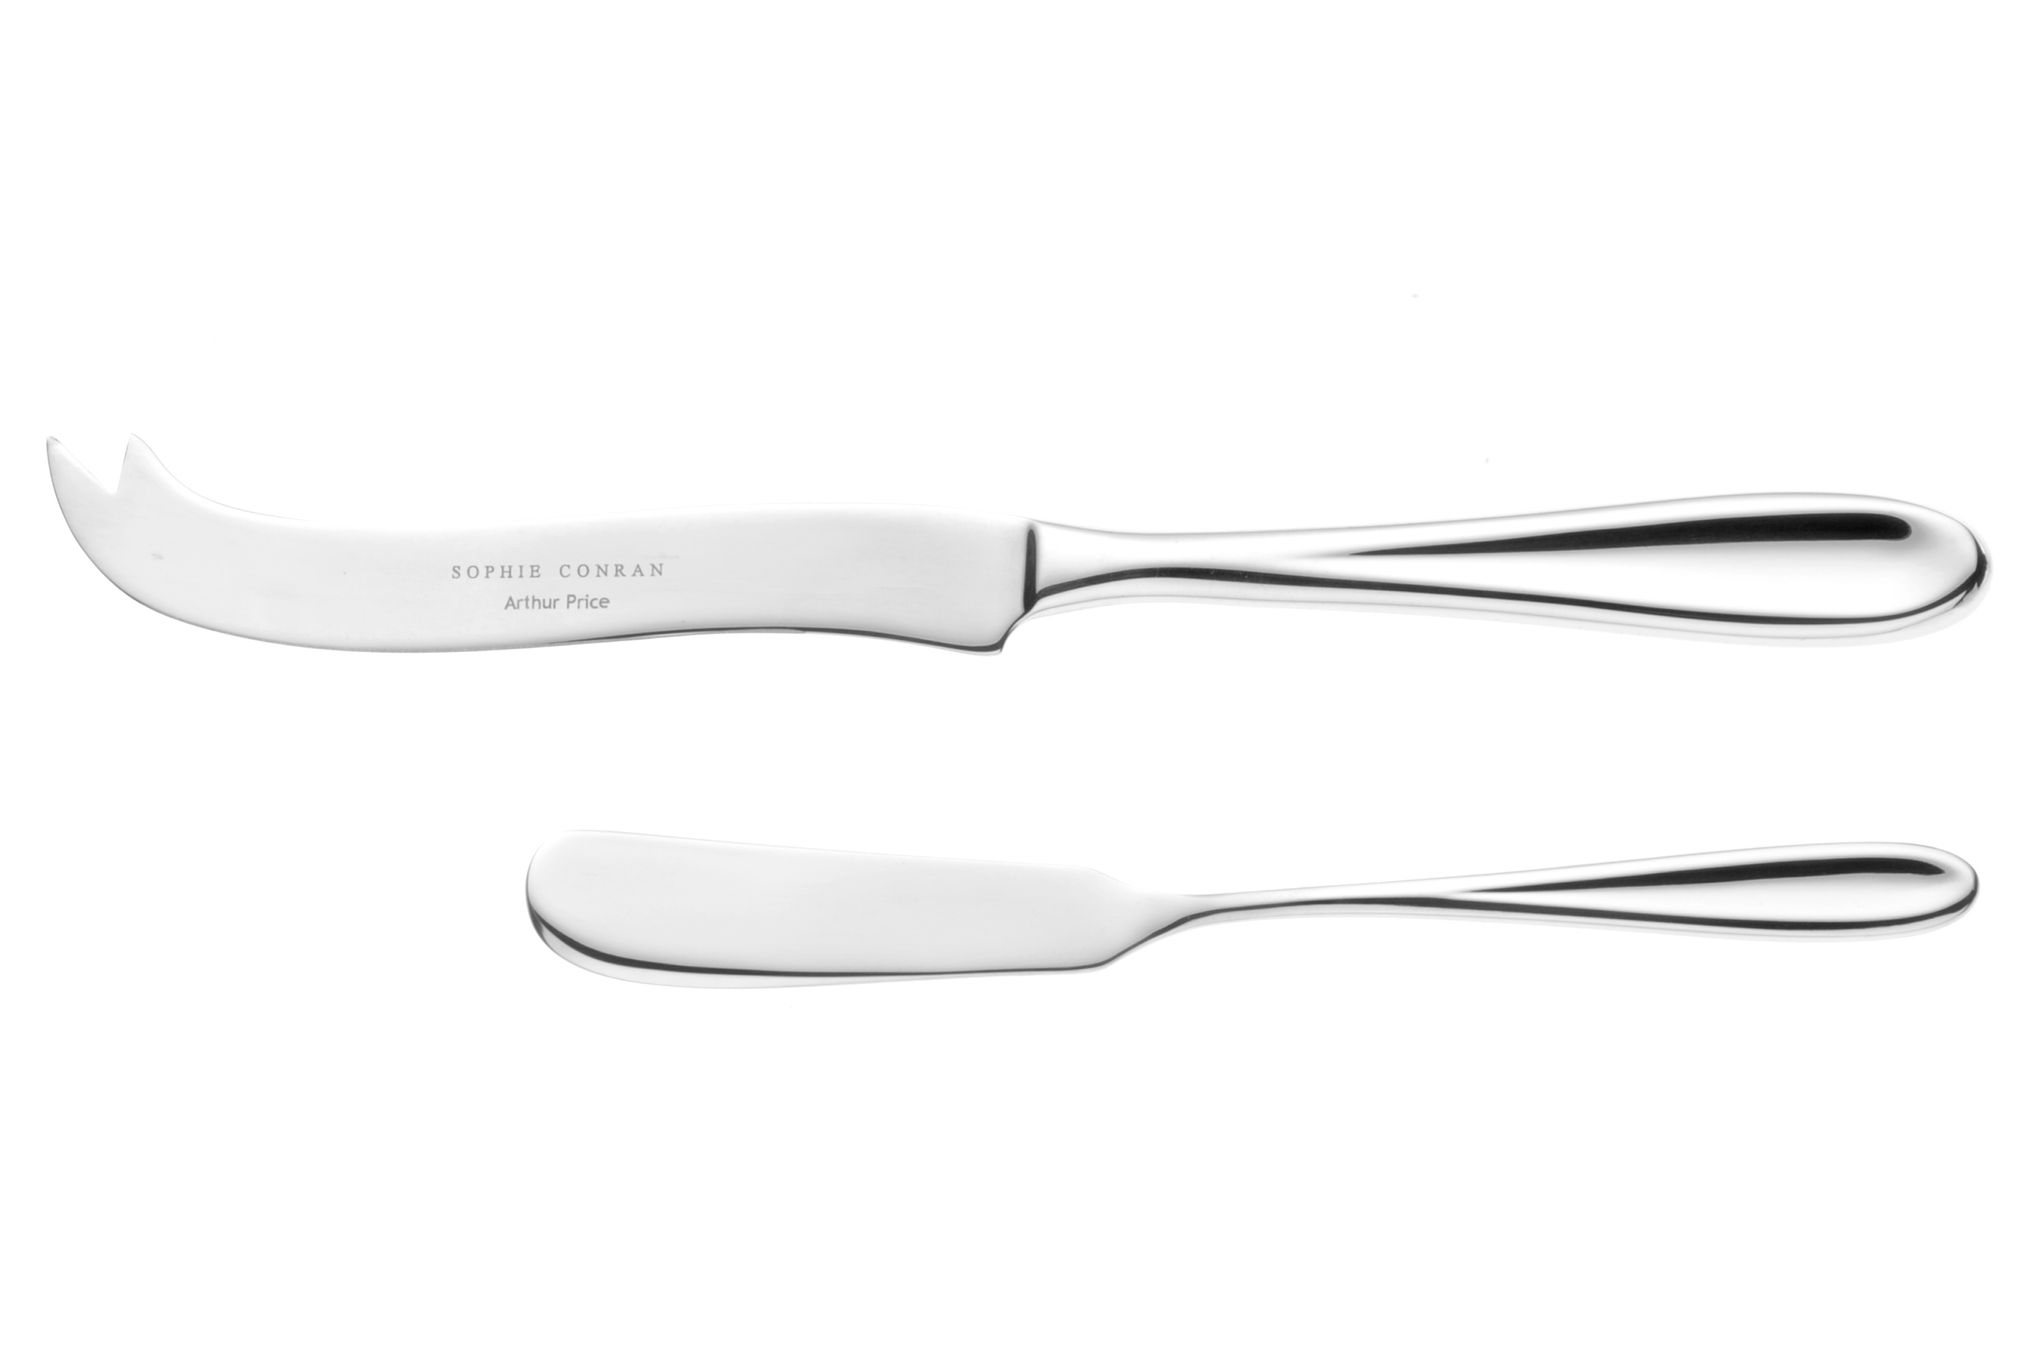 Sophie Conran for Arthur Price Rivelin Cheese and Butter Knife Set thumb 2